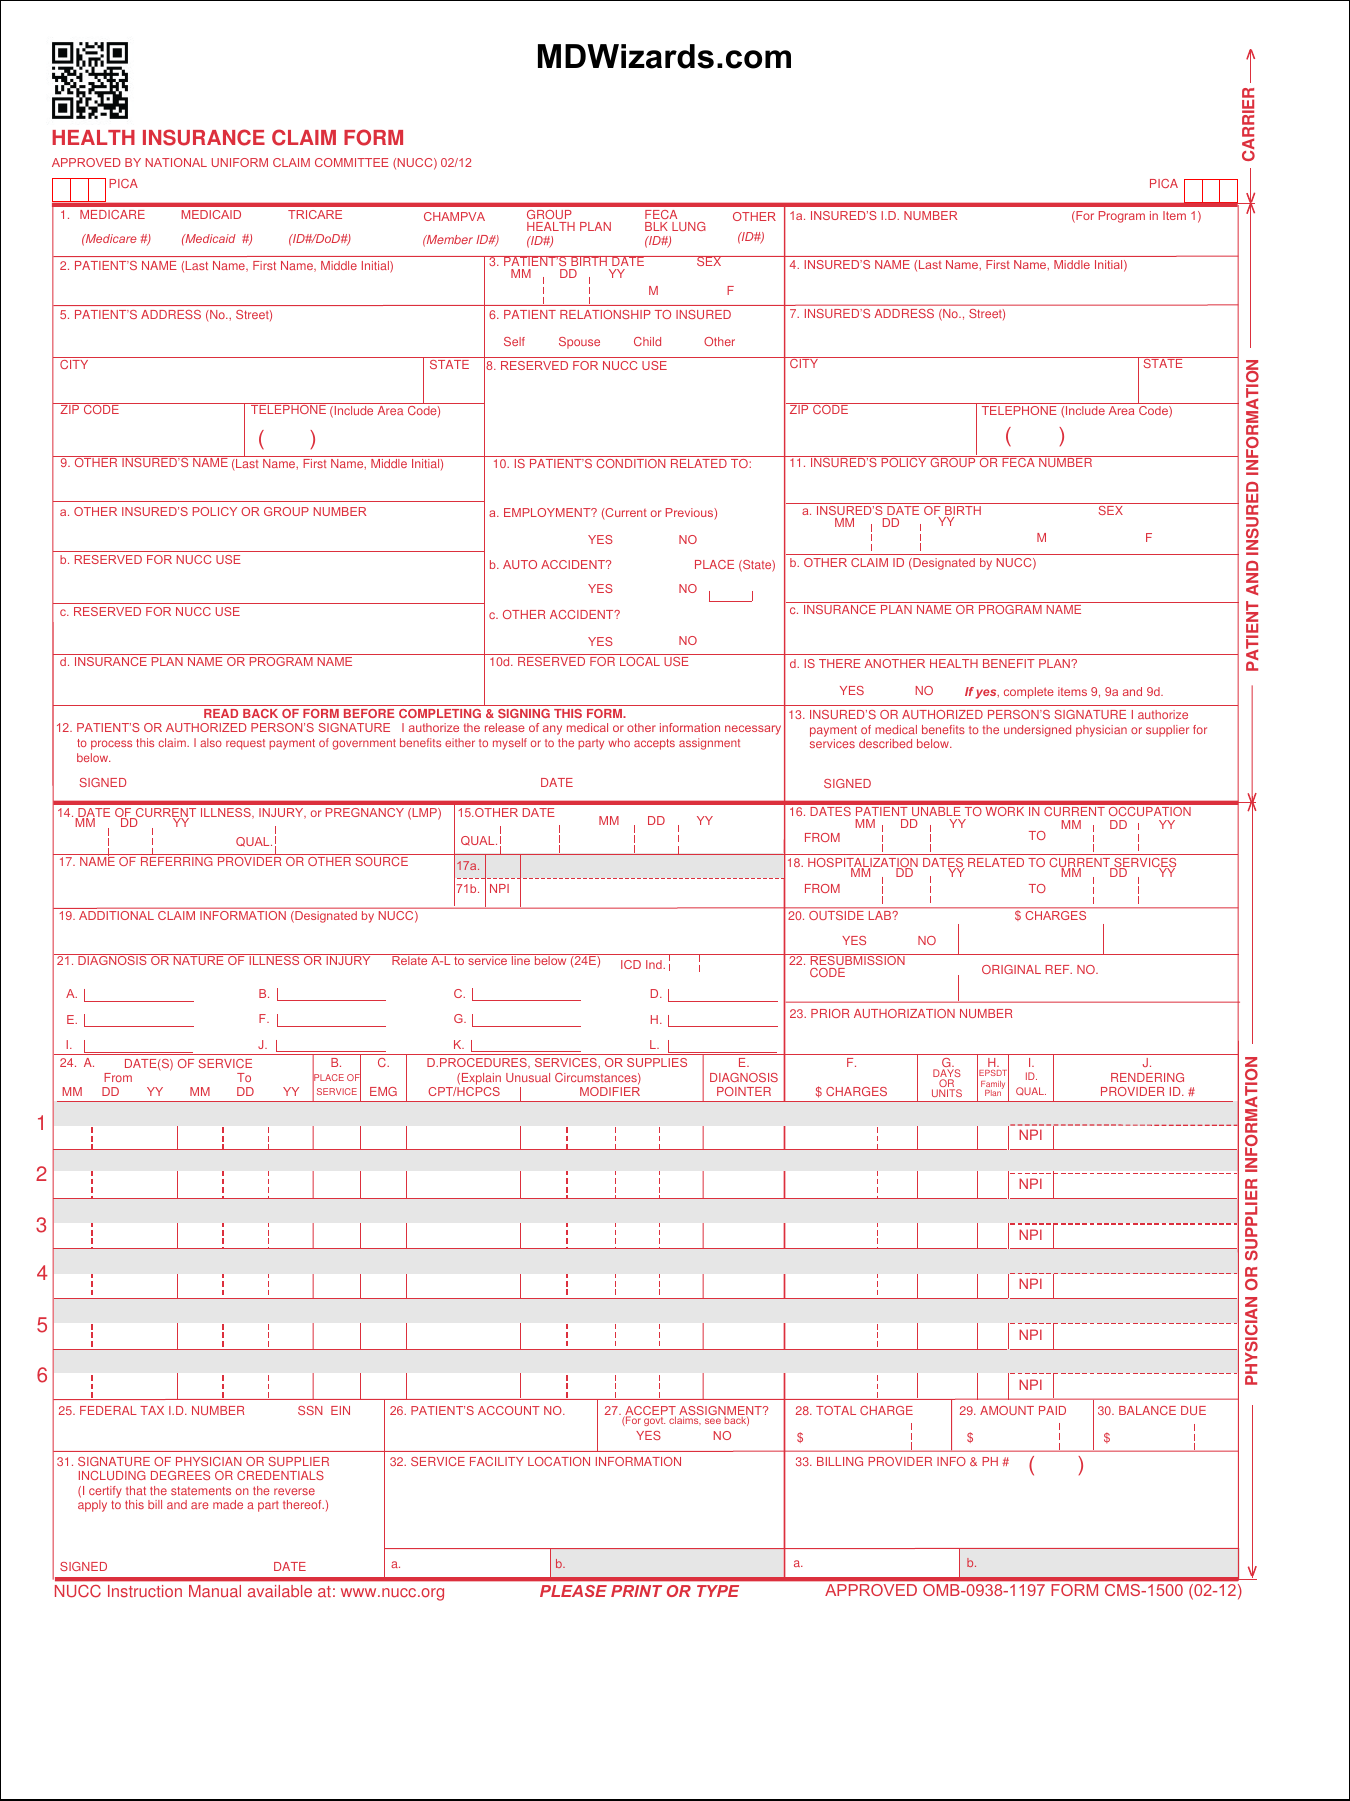 Cms form templates hcfa best 1500 claim envelopes fillable pdf.